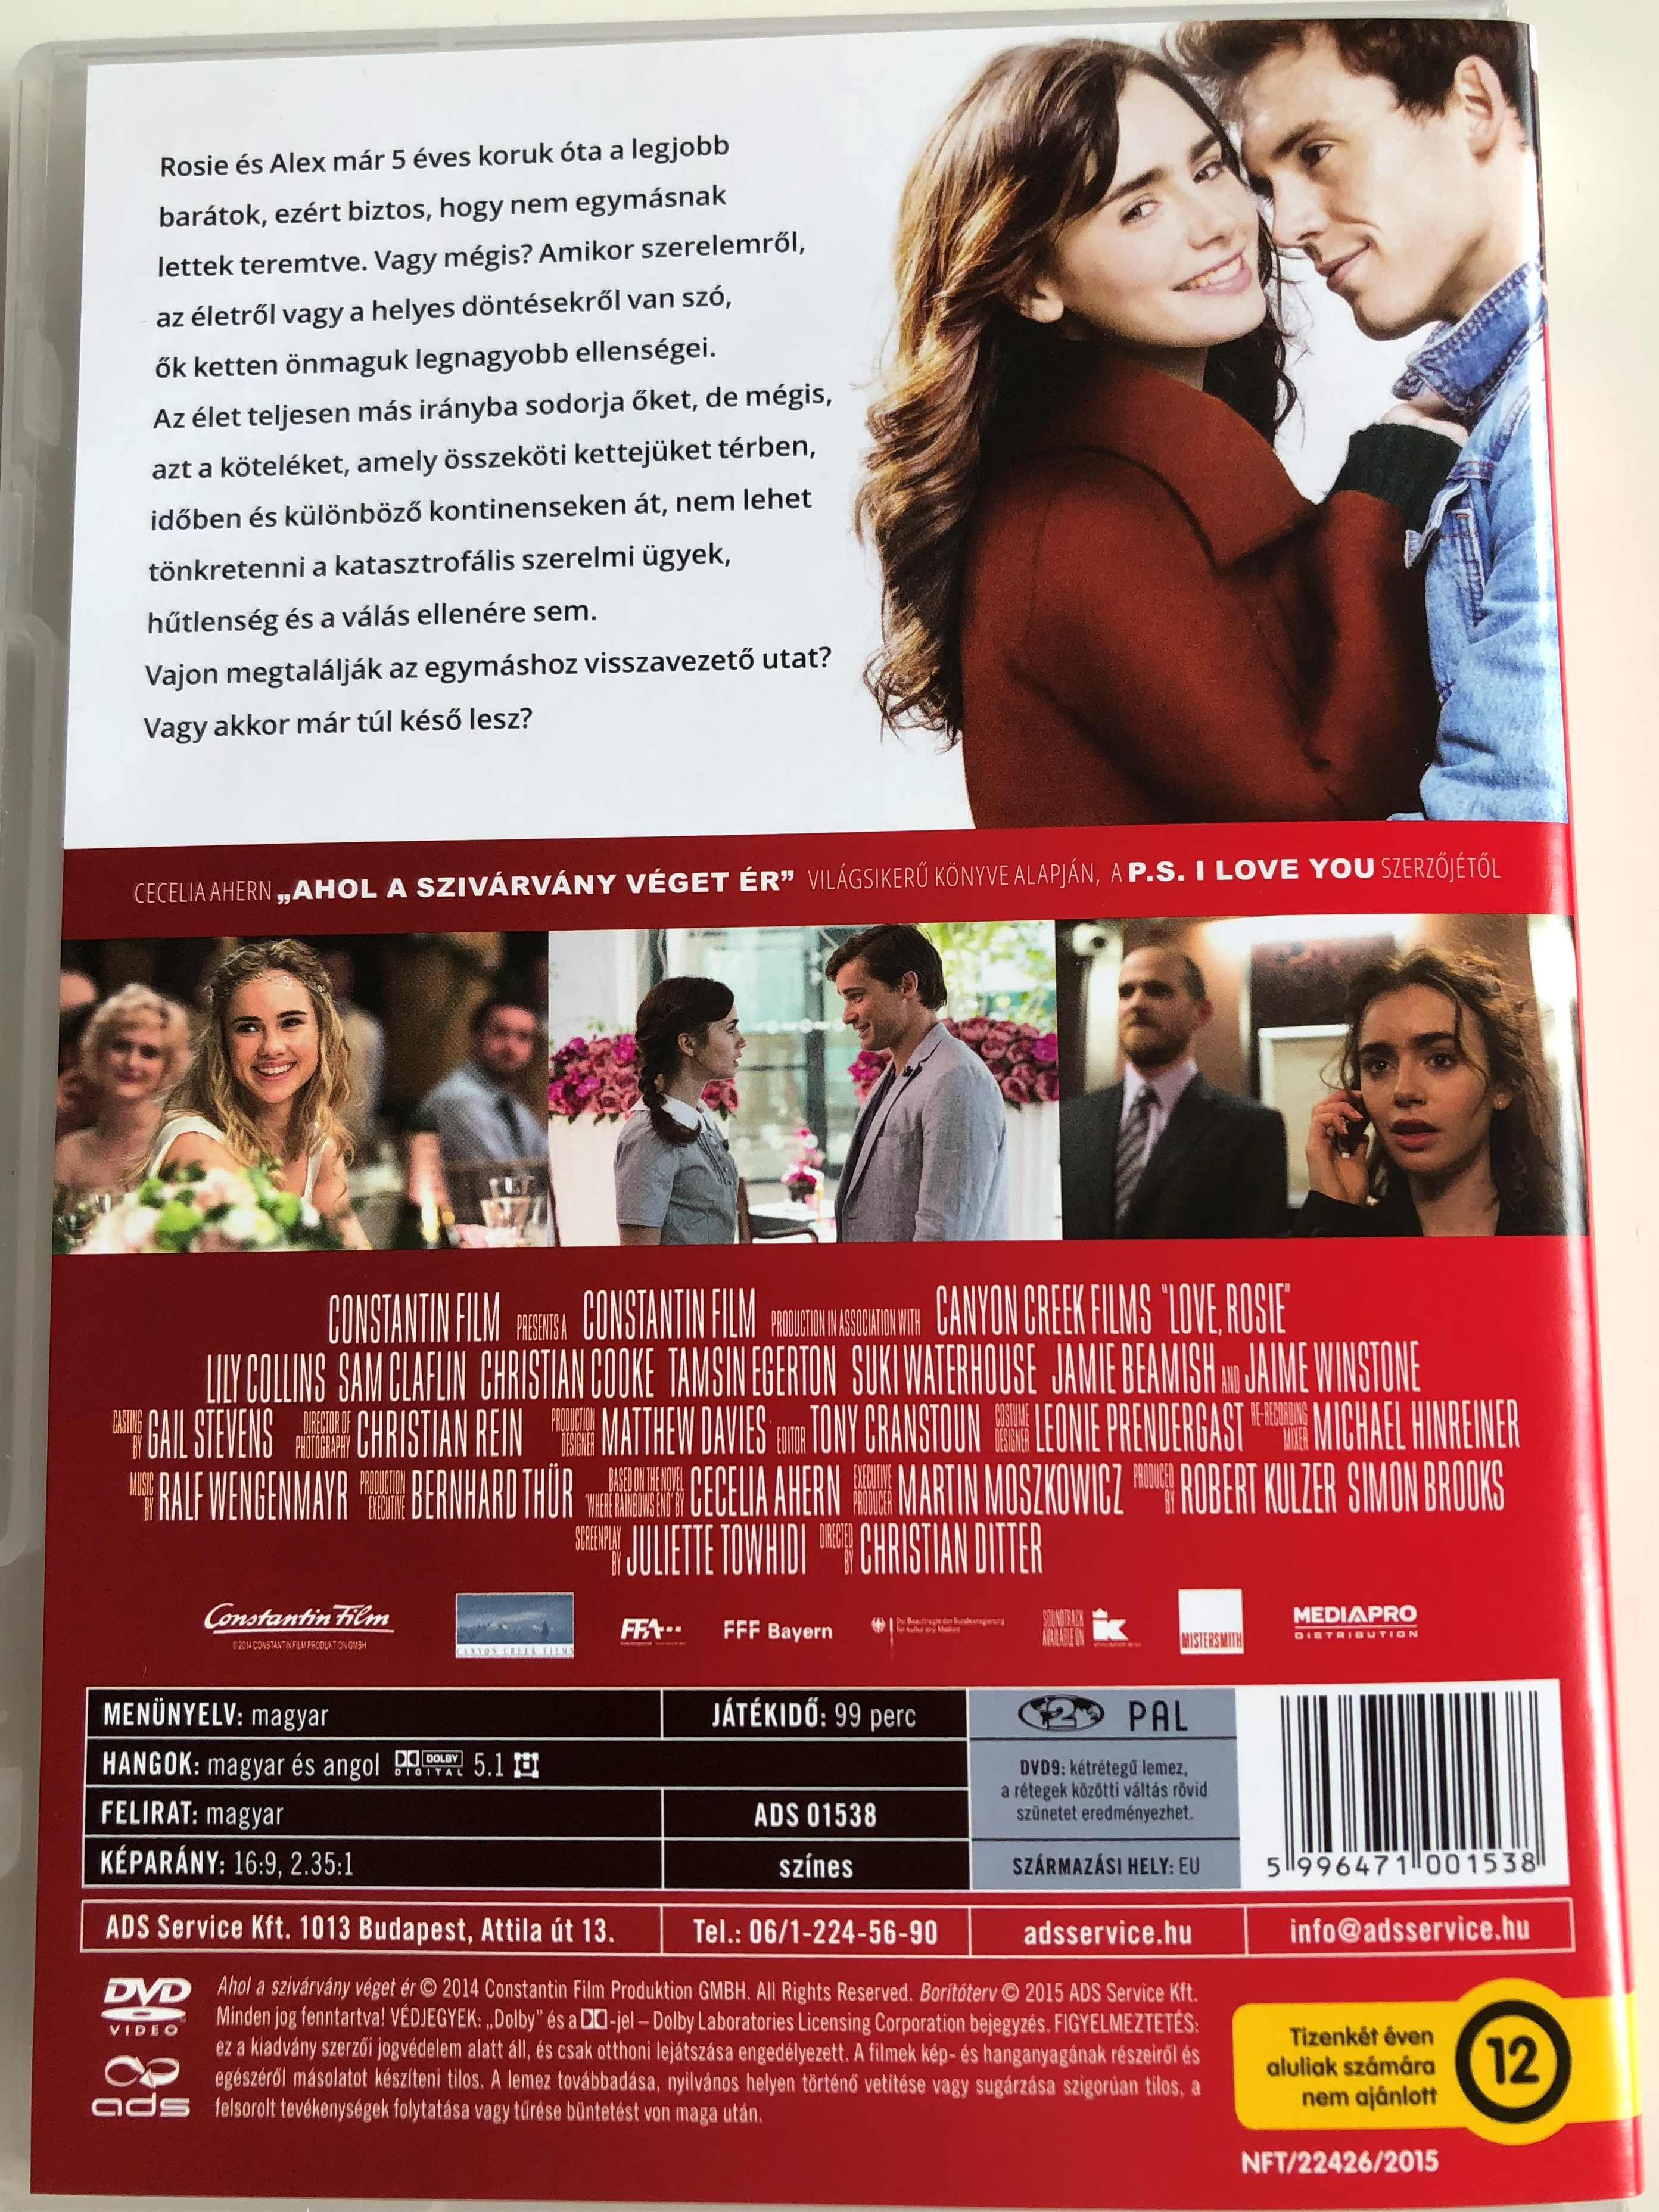 ahol-a-sziv-rv-ny-v-get-r-dvd-2004-love-rosie-directed-by-christian-ditter-starring-lily-collins-sam-claflin-2-.jpg